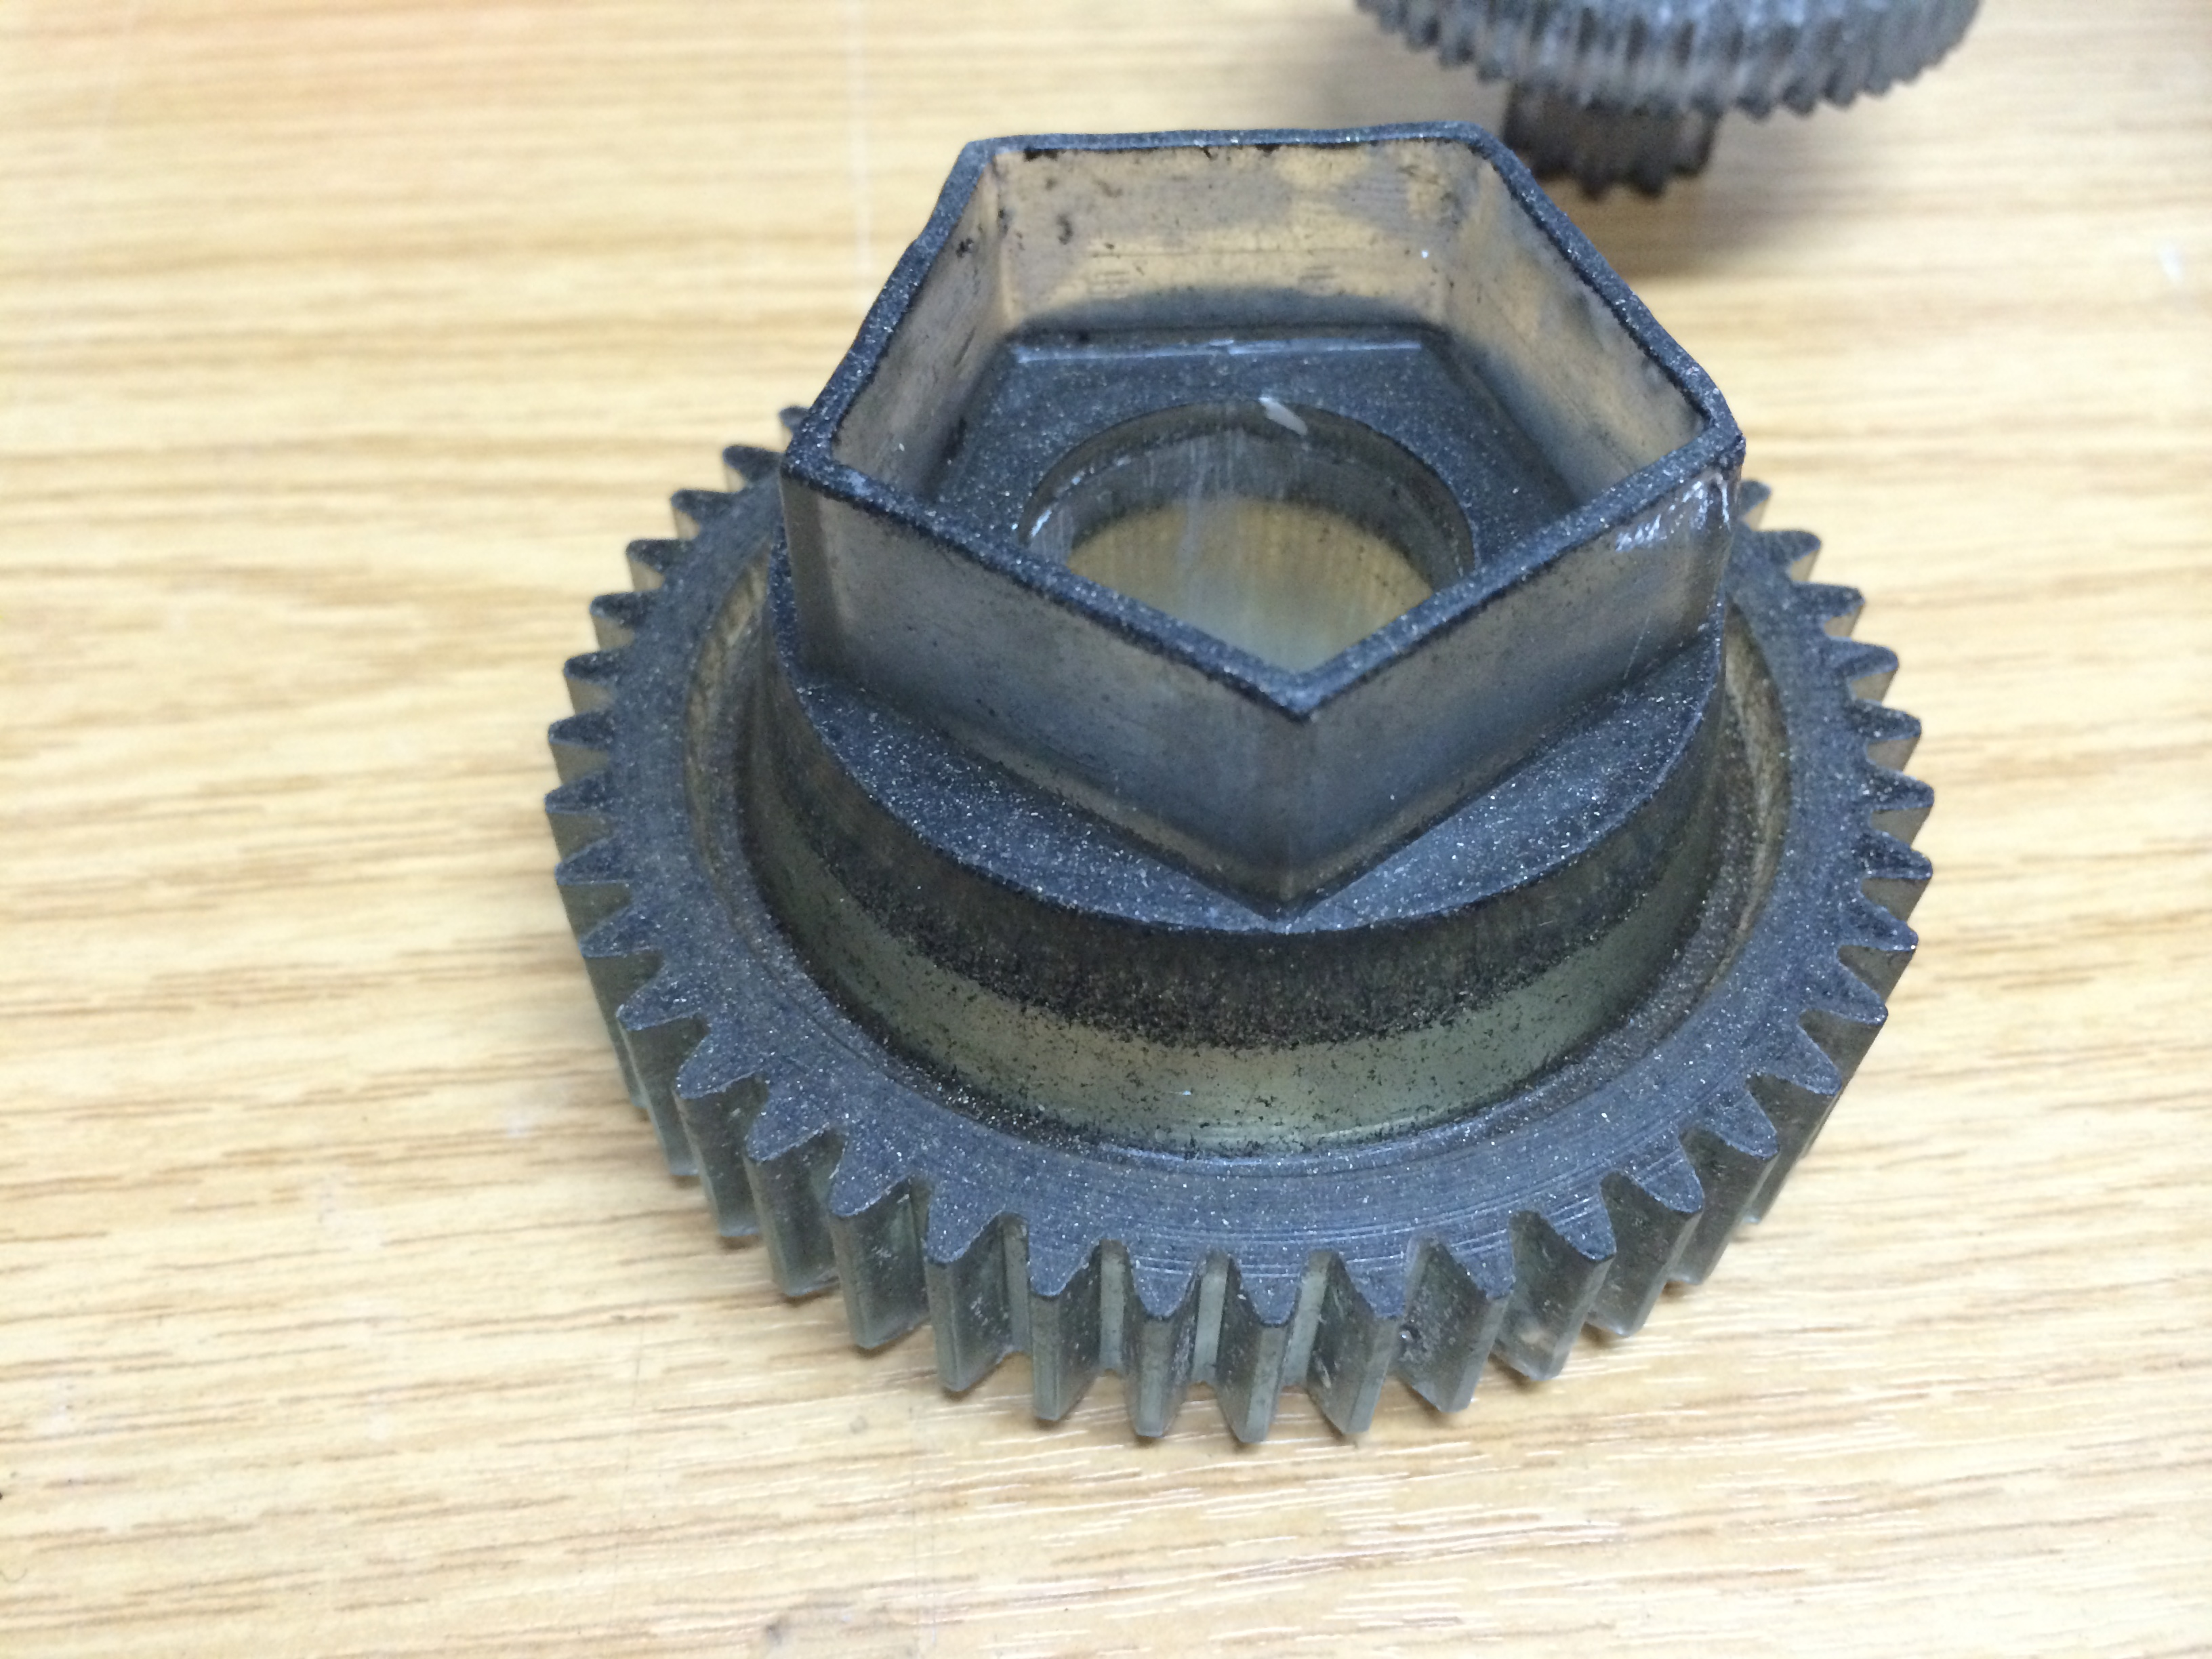 Picture of Resin Casting Gears for Power Wheels